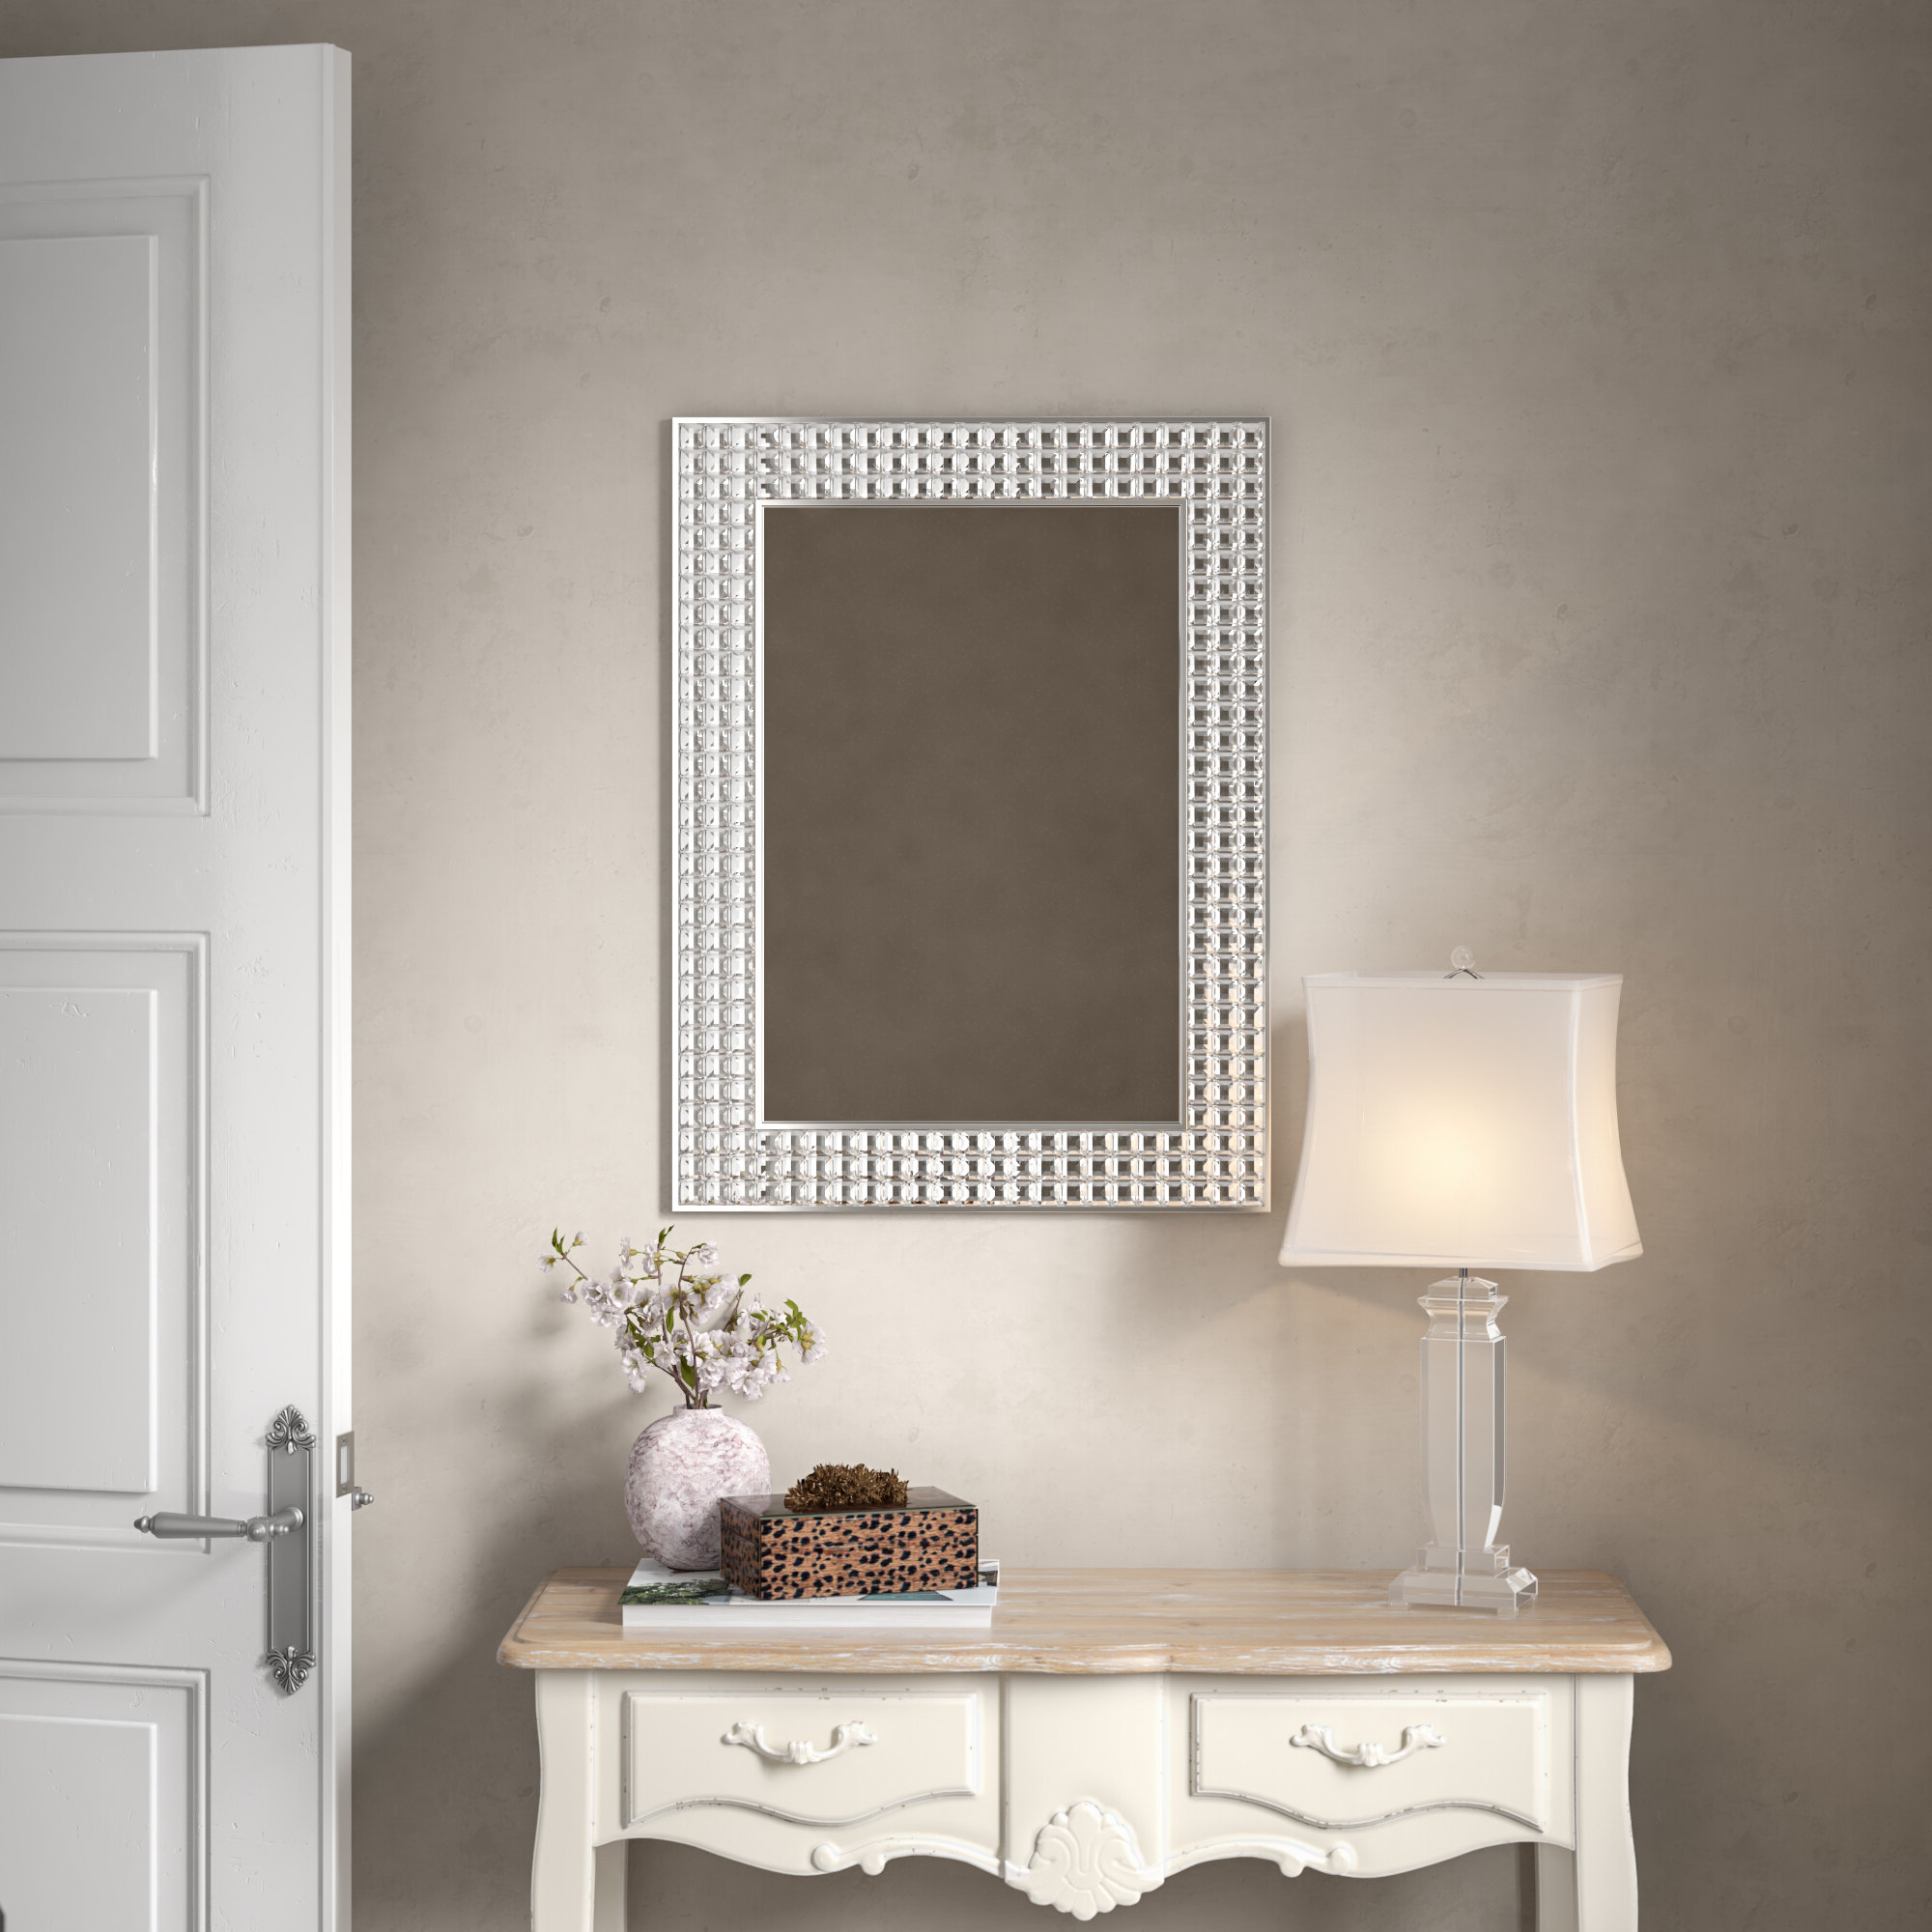 Famous Wall Mirrors With Crystals Throughout Crystals Wall Mirror (View 6 of 20)